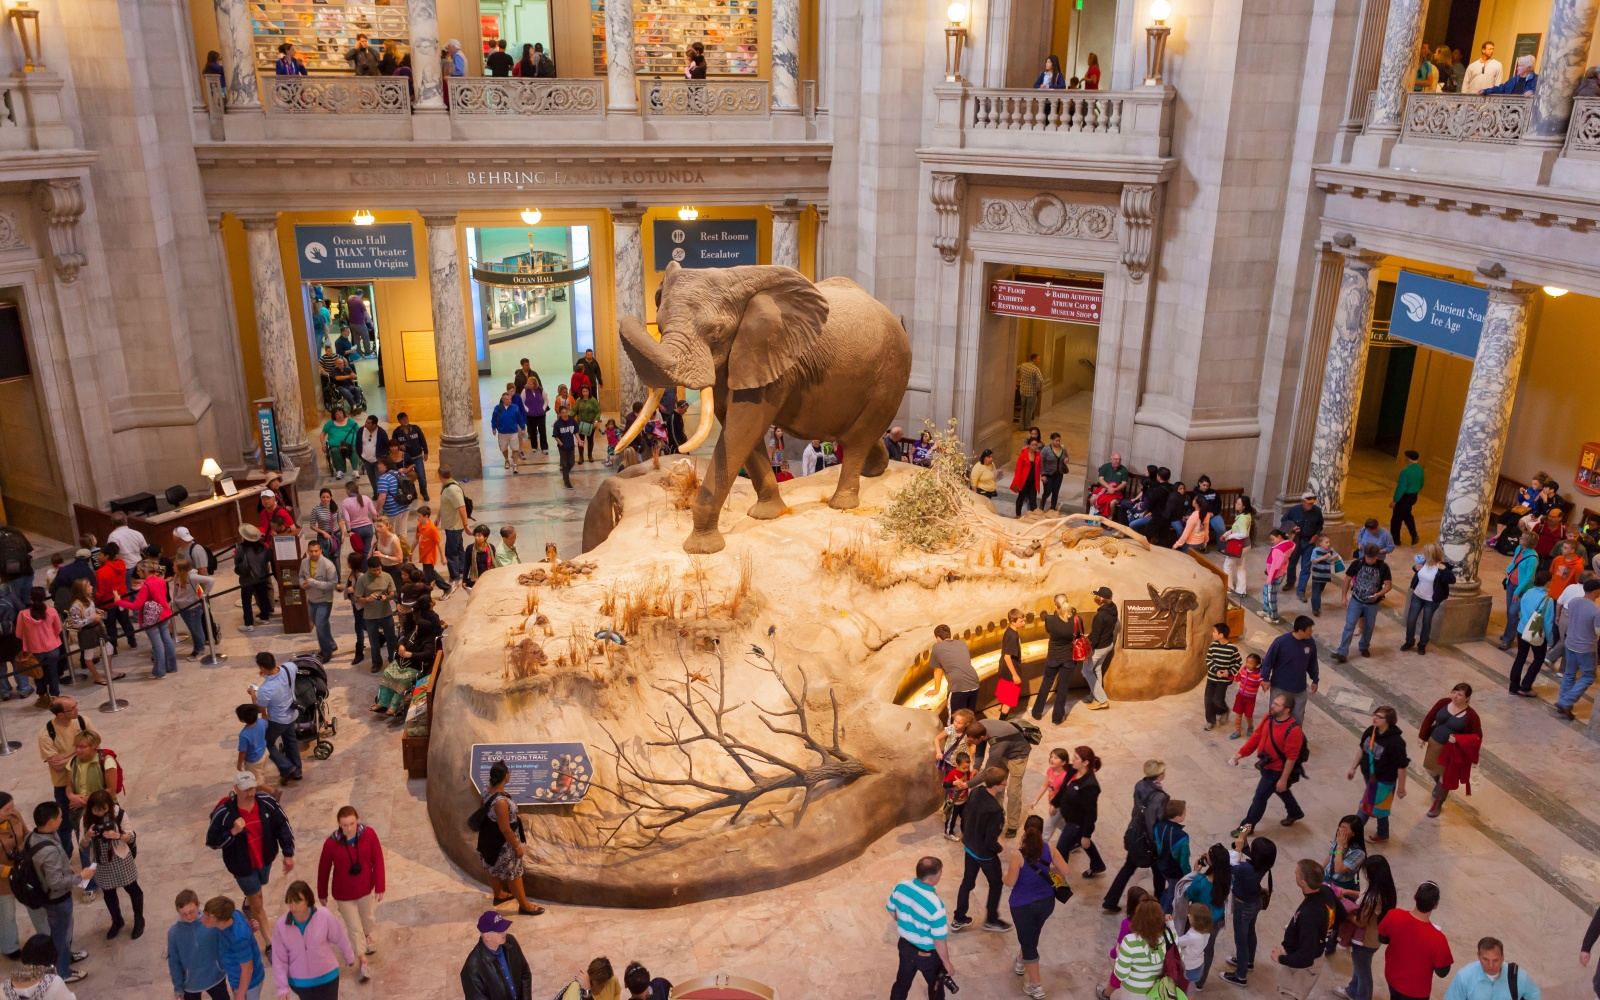 Smithsonian National Museum of Natural History, Washington, D.C.